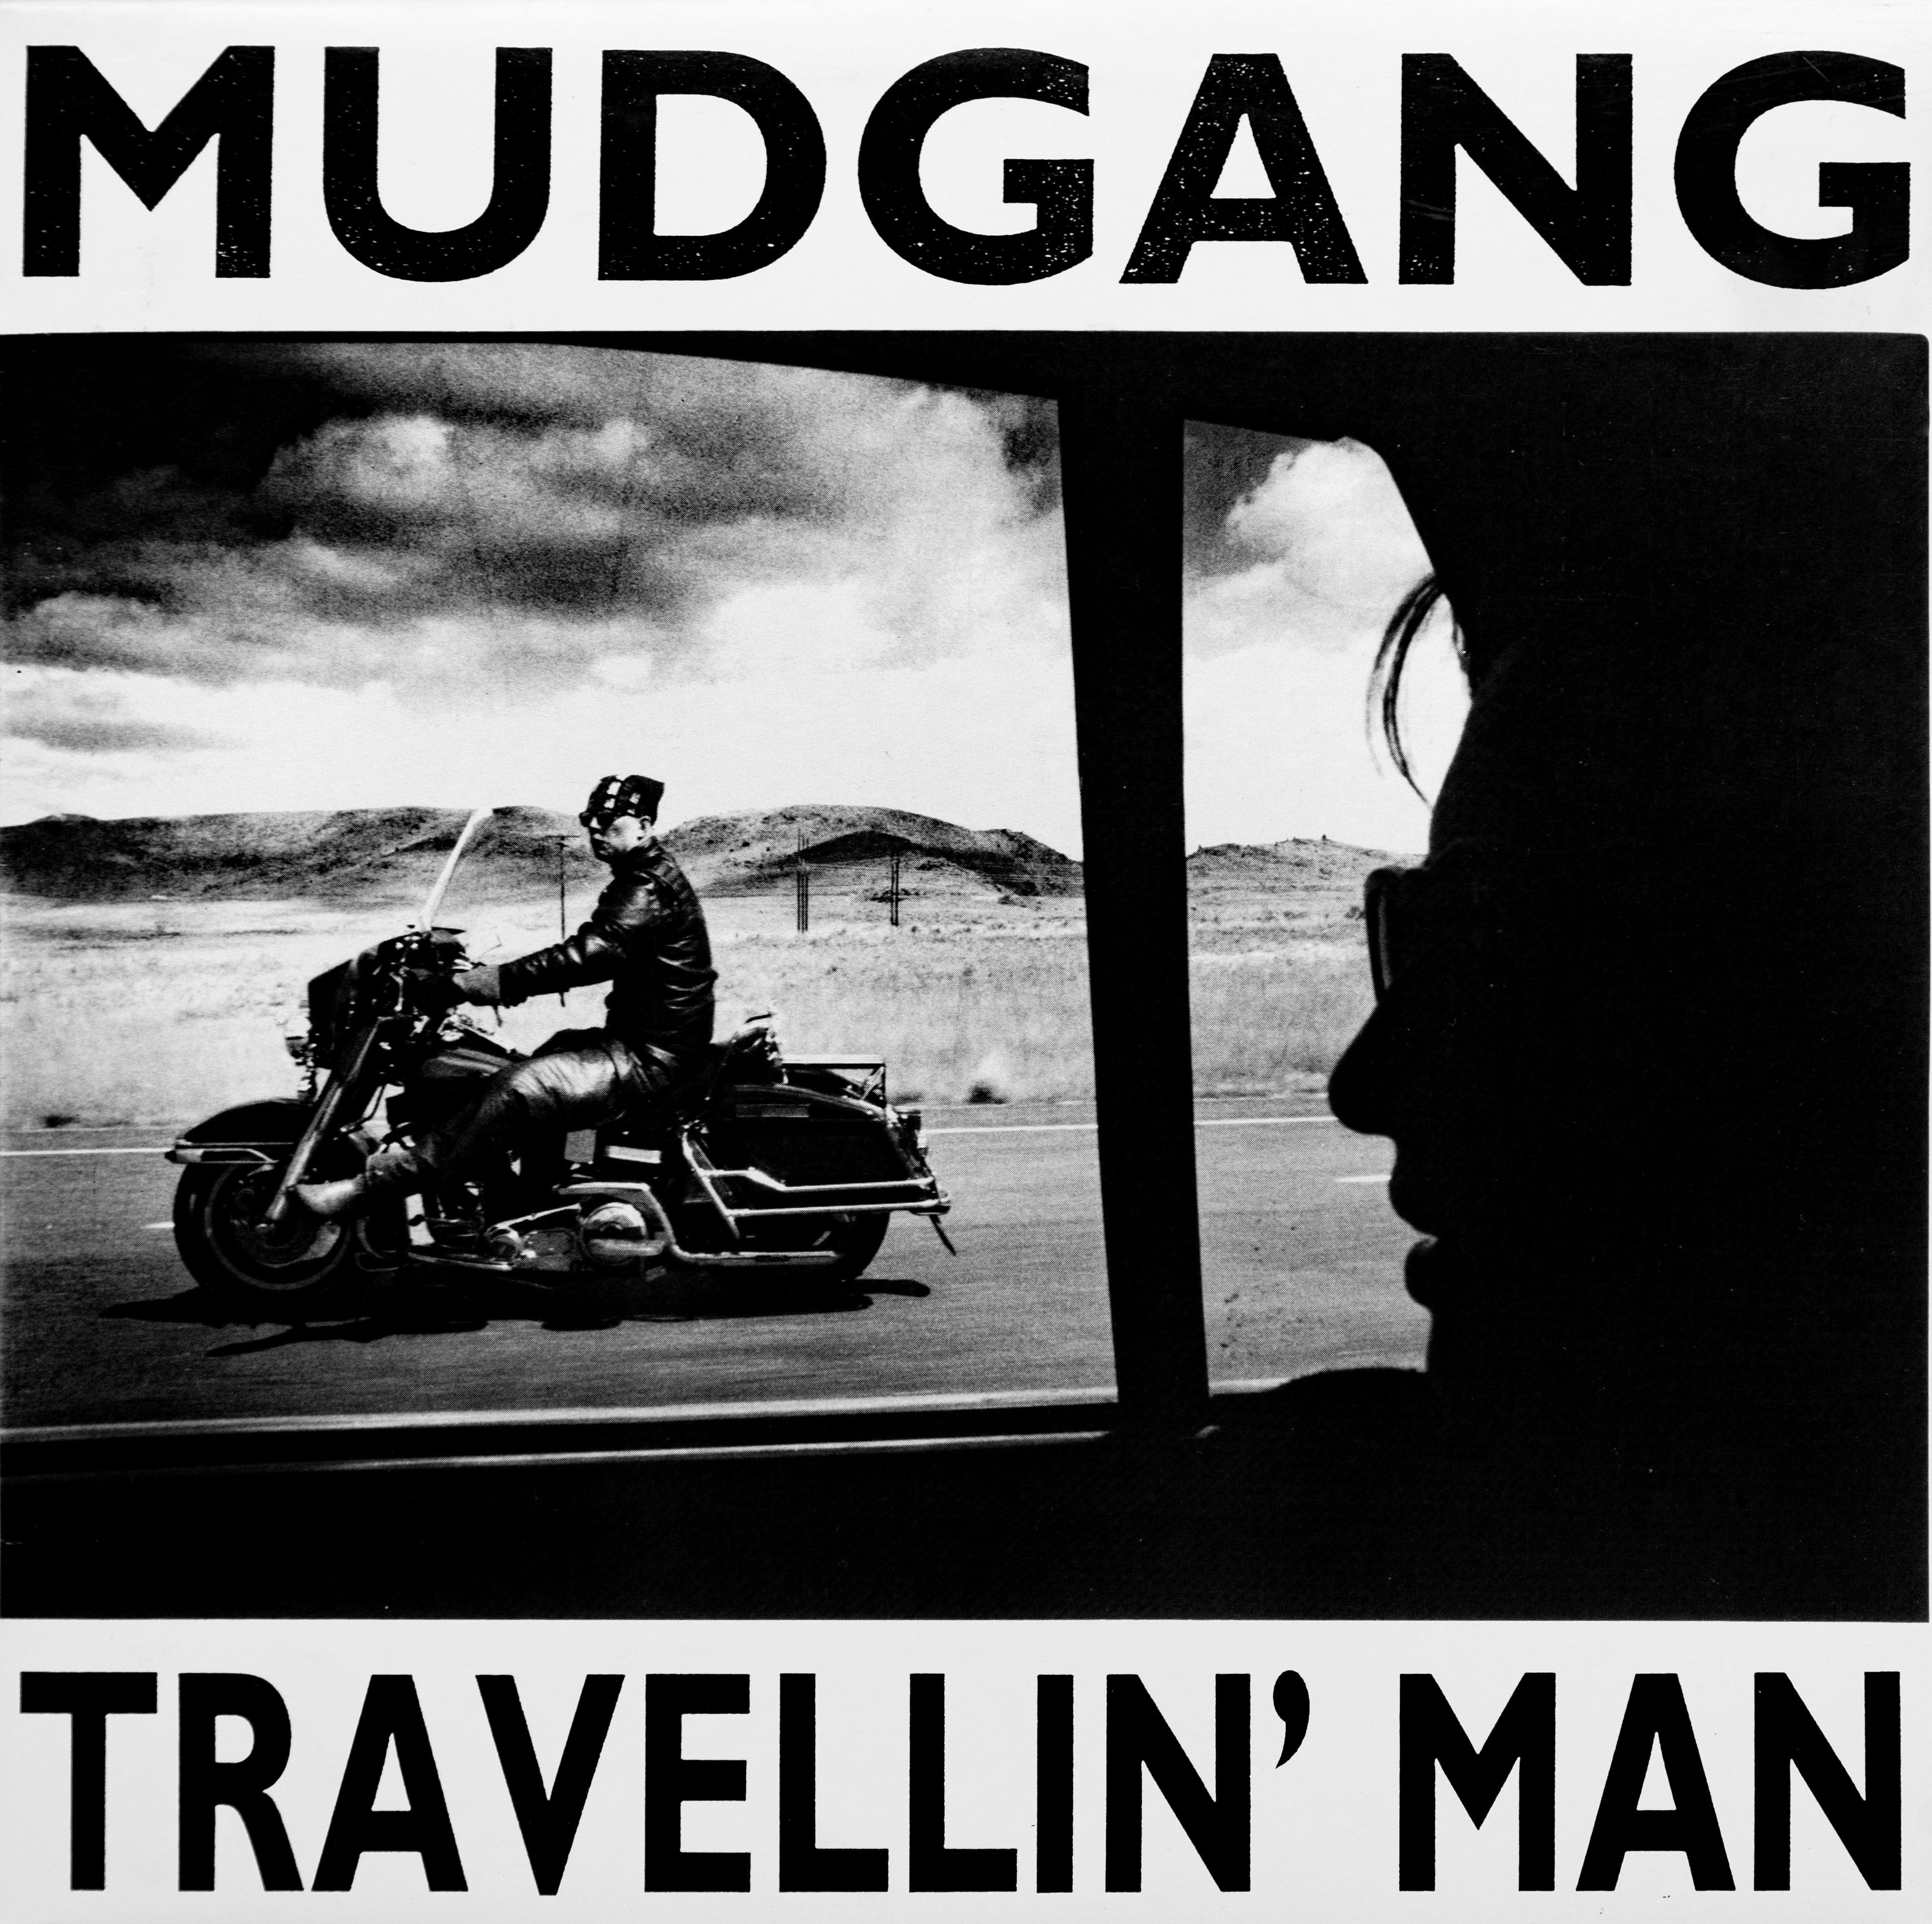 The Mudgang - Travellin' Man front cover